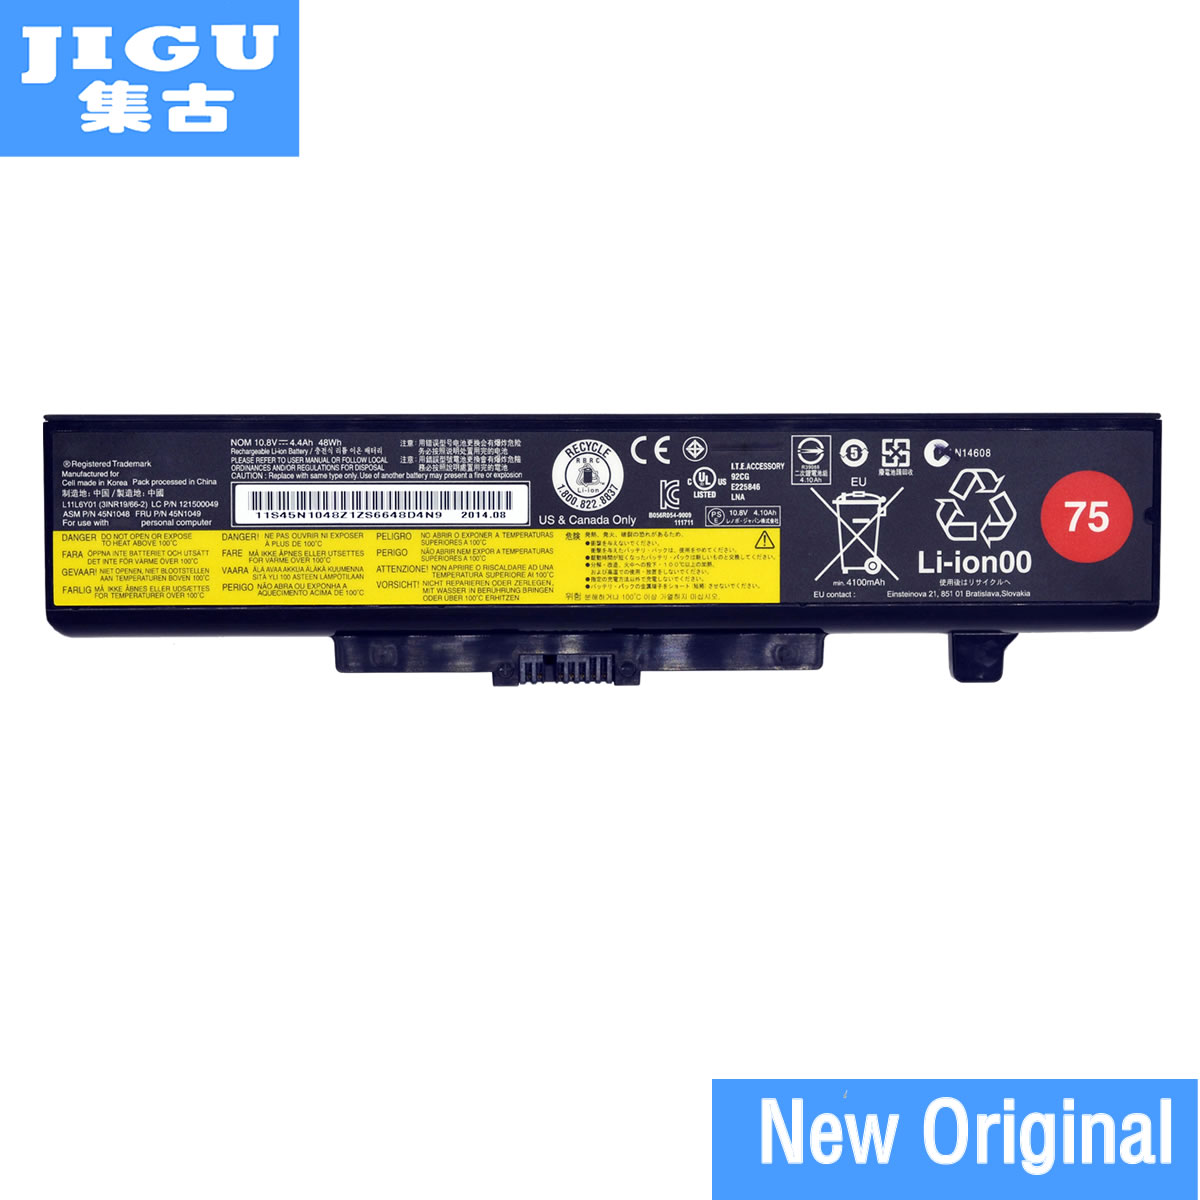 JIGU Original Battery For Lenovo For IdeaPad Y485p Y480 B590 G710 N581 G700 P585 B490 Series For ThinkPad E540 E440 E531 E431